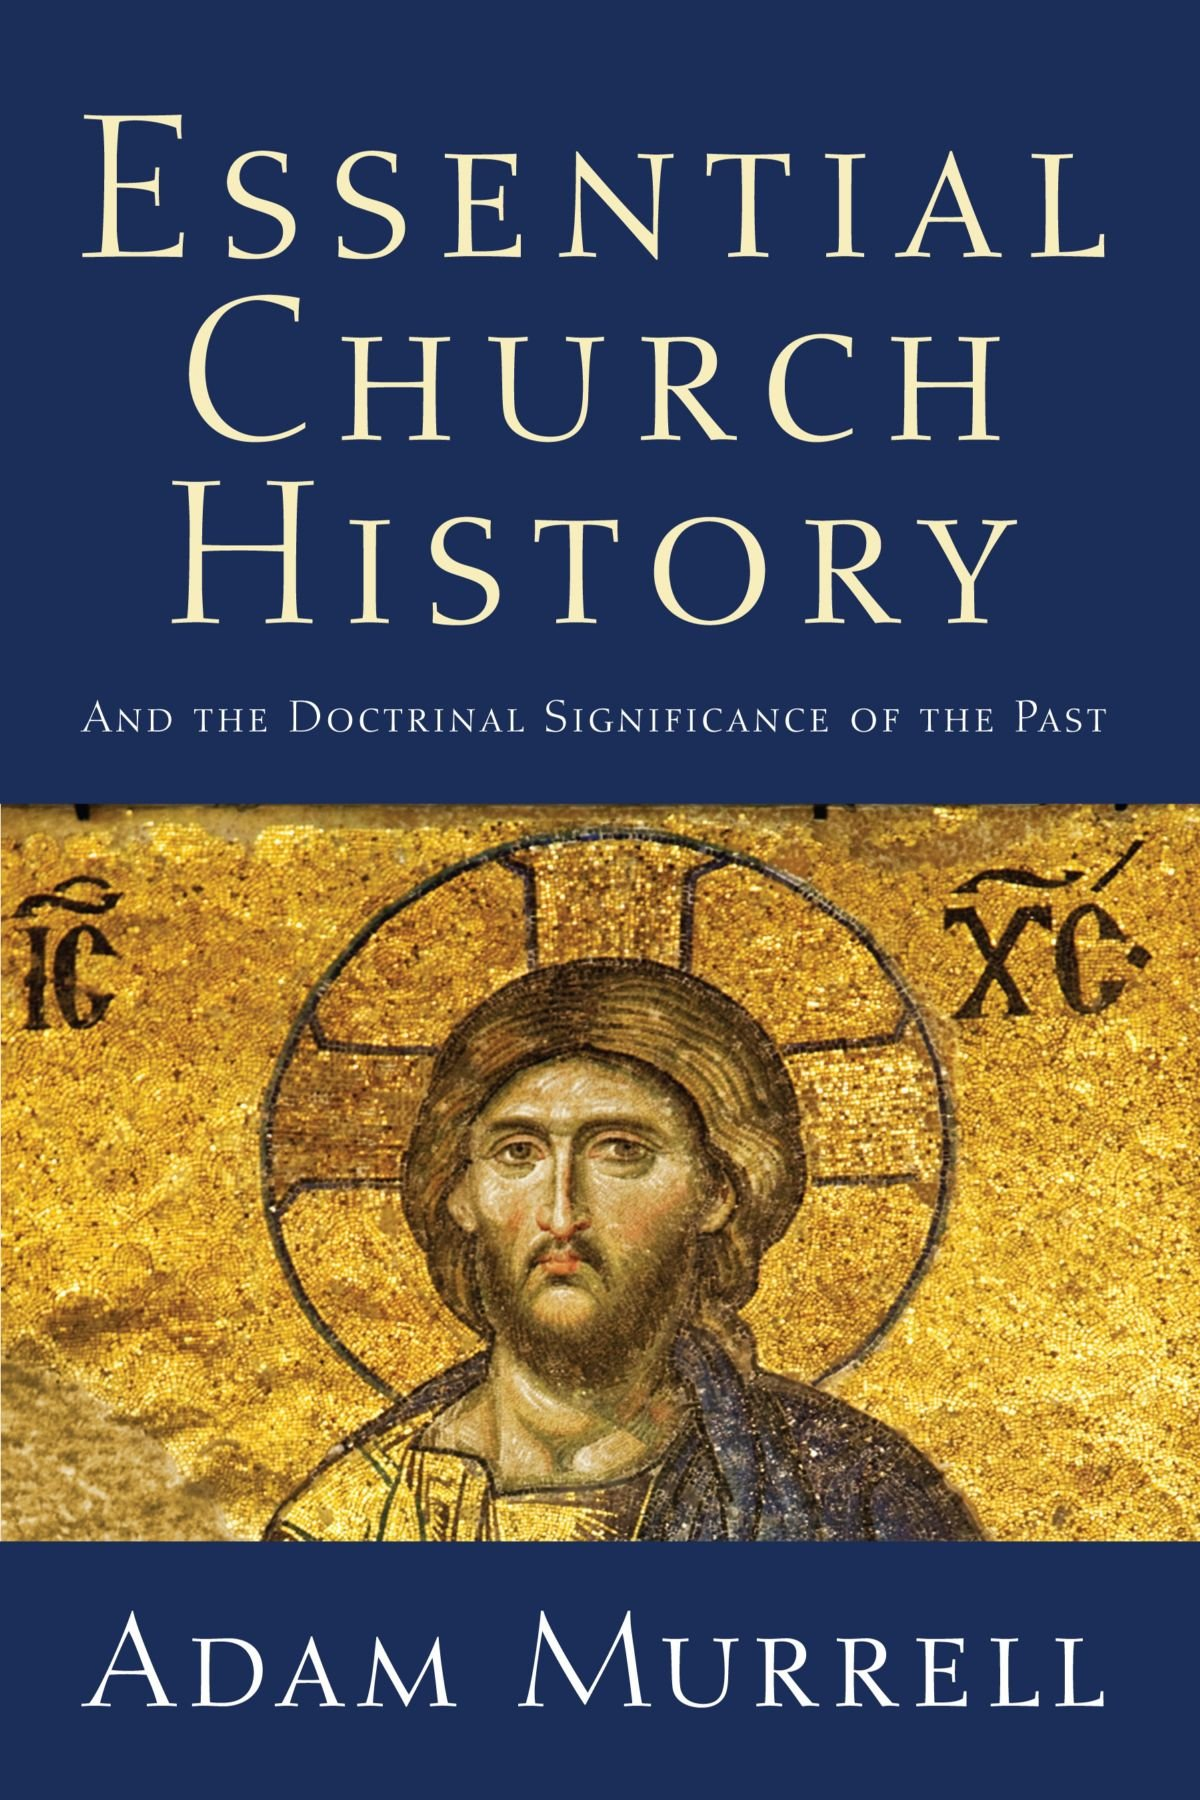 Download Essential Church History: And the Doctrinal Significance of the Past PDF